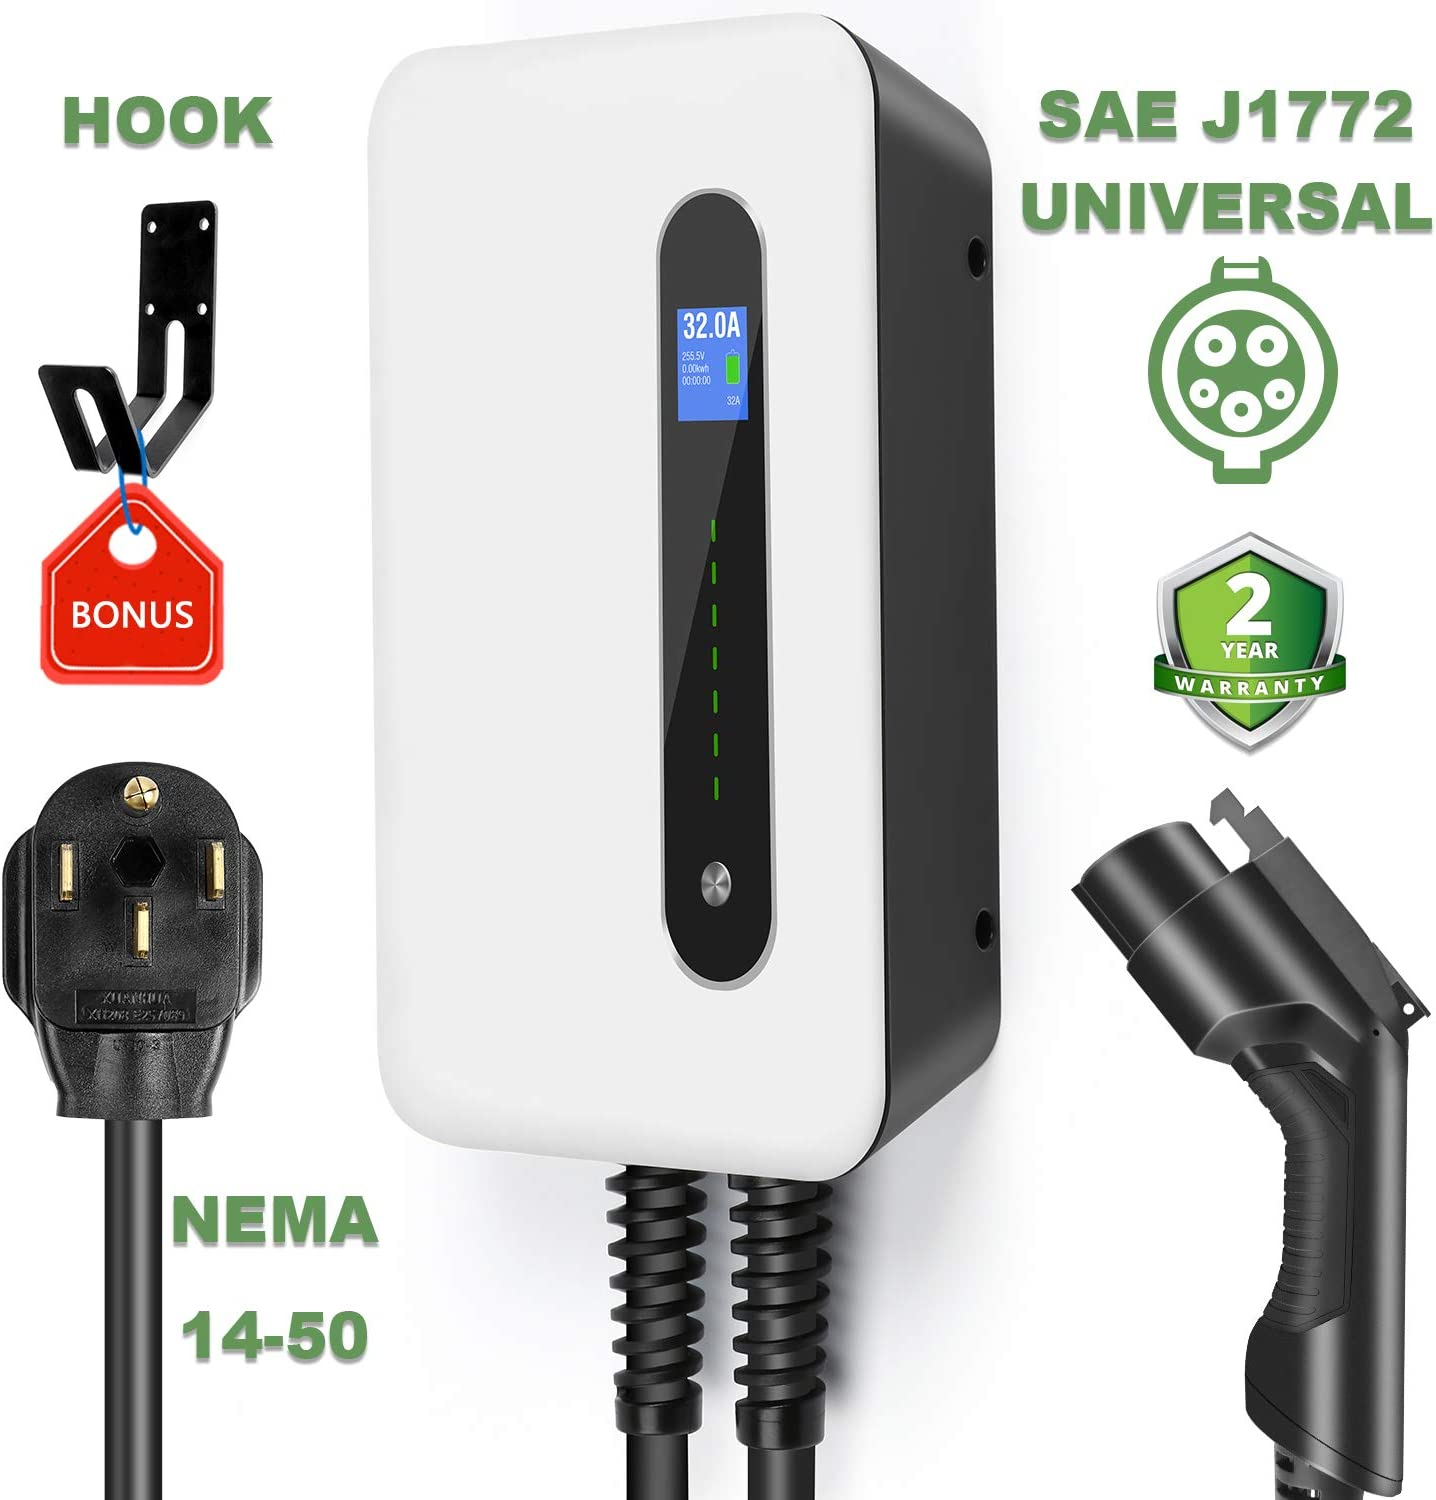 lefanev EV Charging Station 32A Level2, ev Charger 220v-240v, Electric Vehicle Charger Station NEMA 14-50, 25Feet Cable (7.5M), SAE J1772 Compatible with All Electric Vehicles (NEMA 14-50)